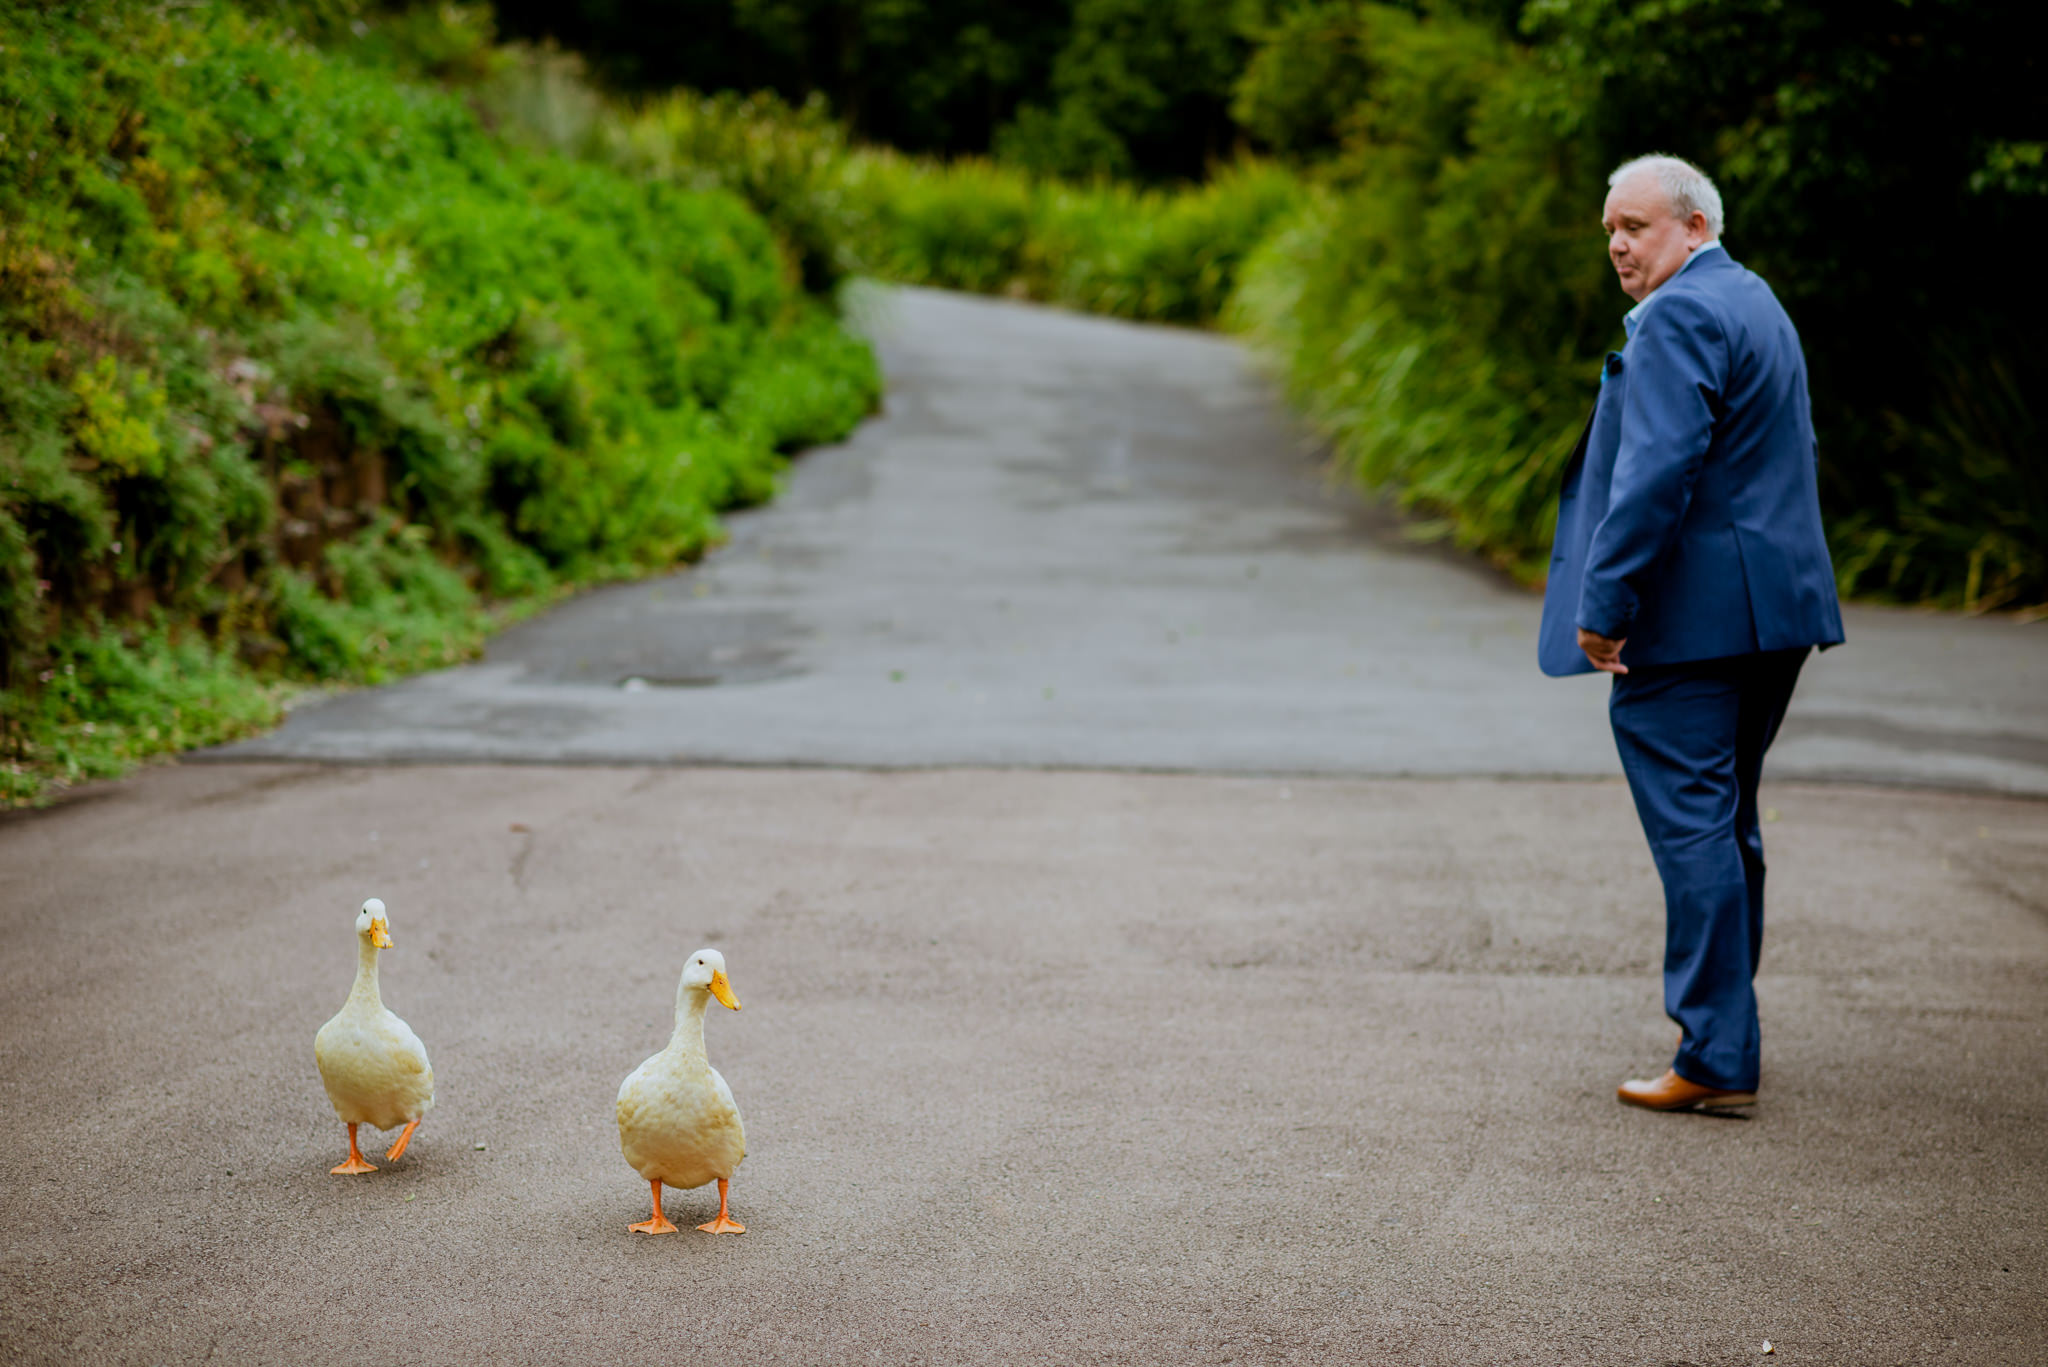 Two geese walk along a road with a man in a suit